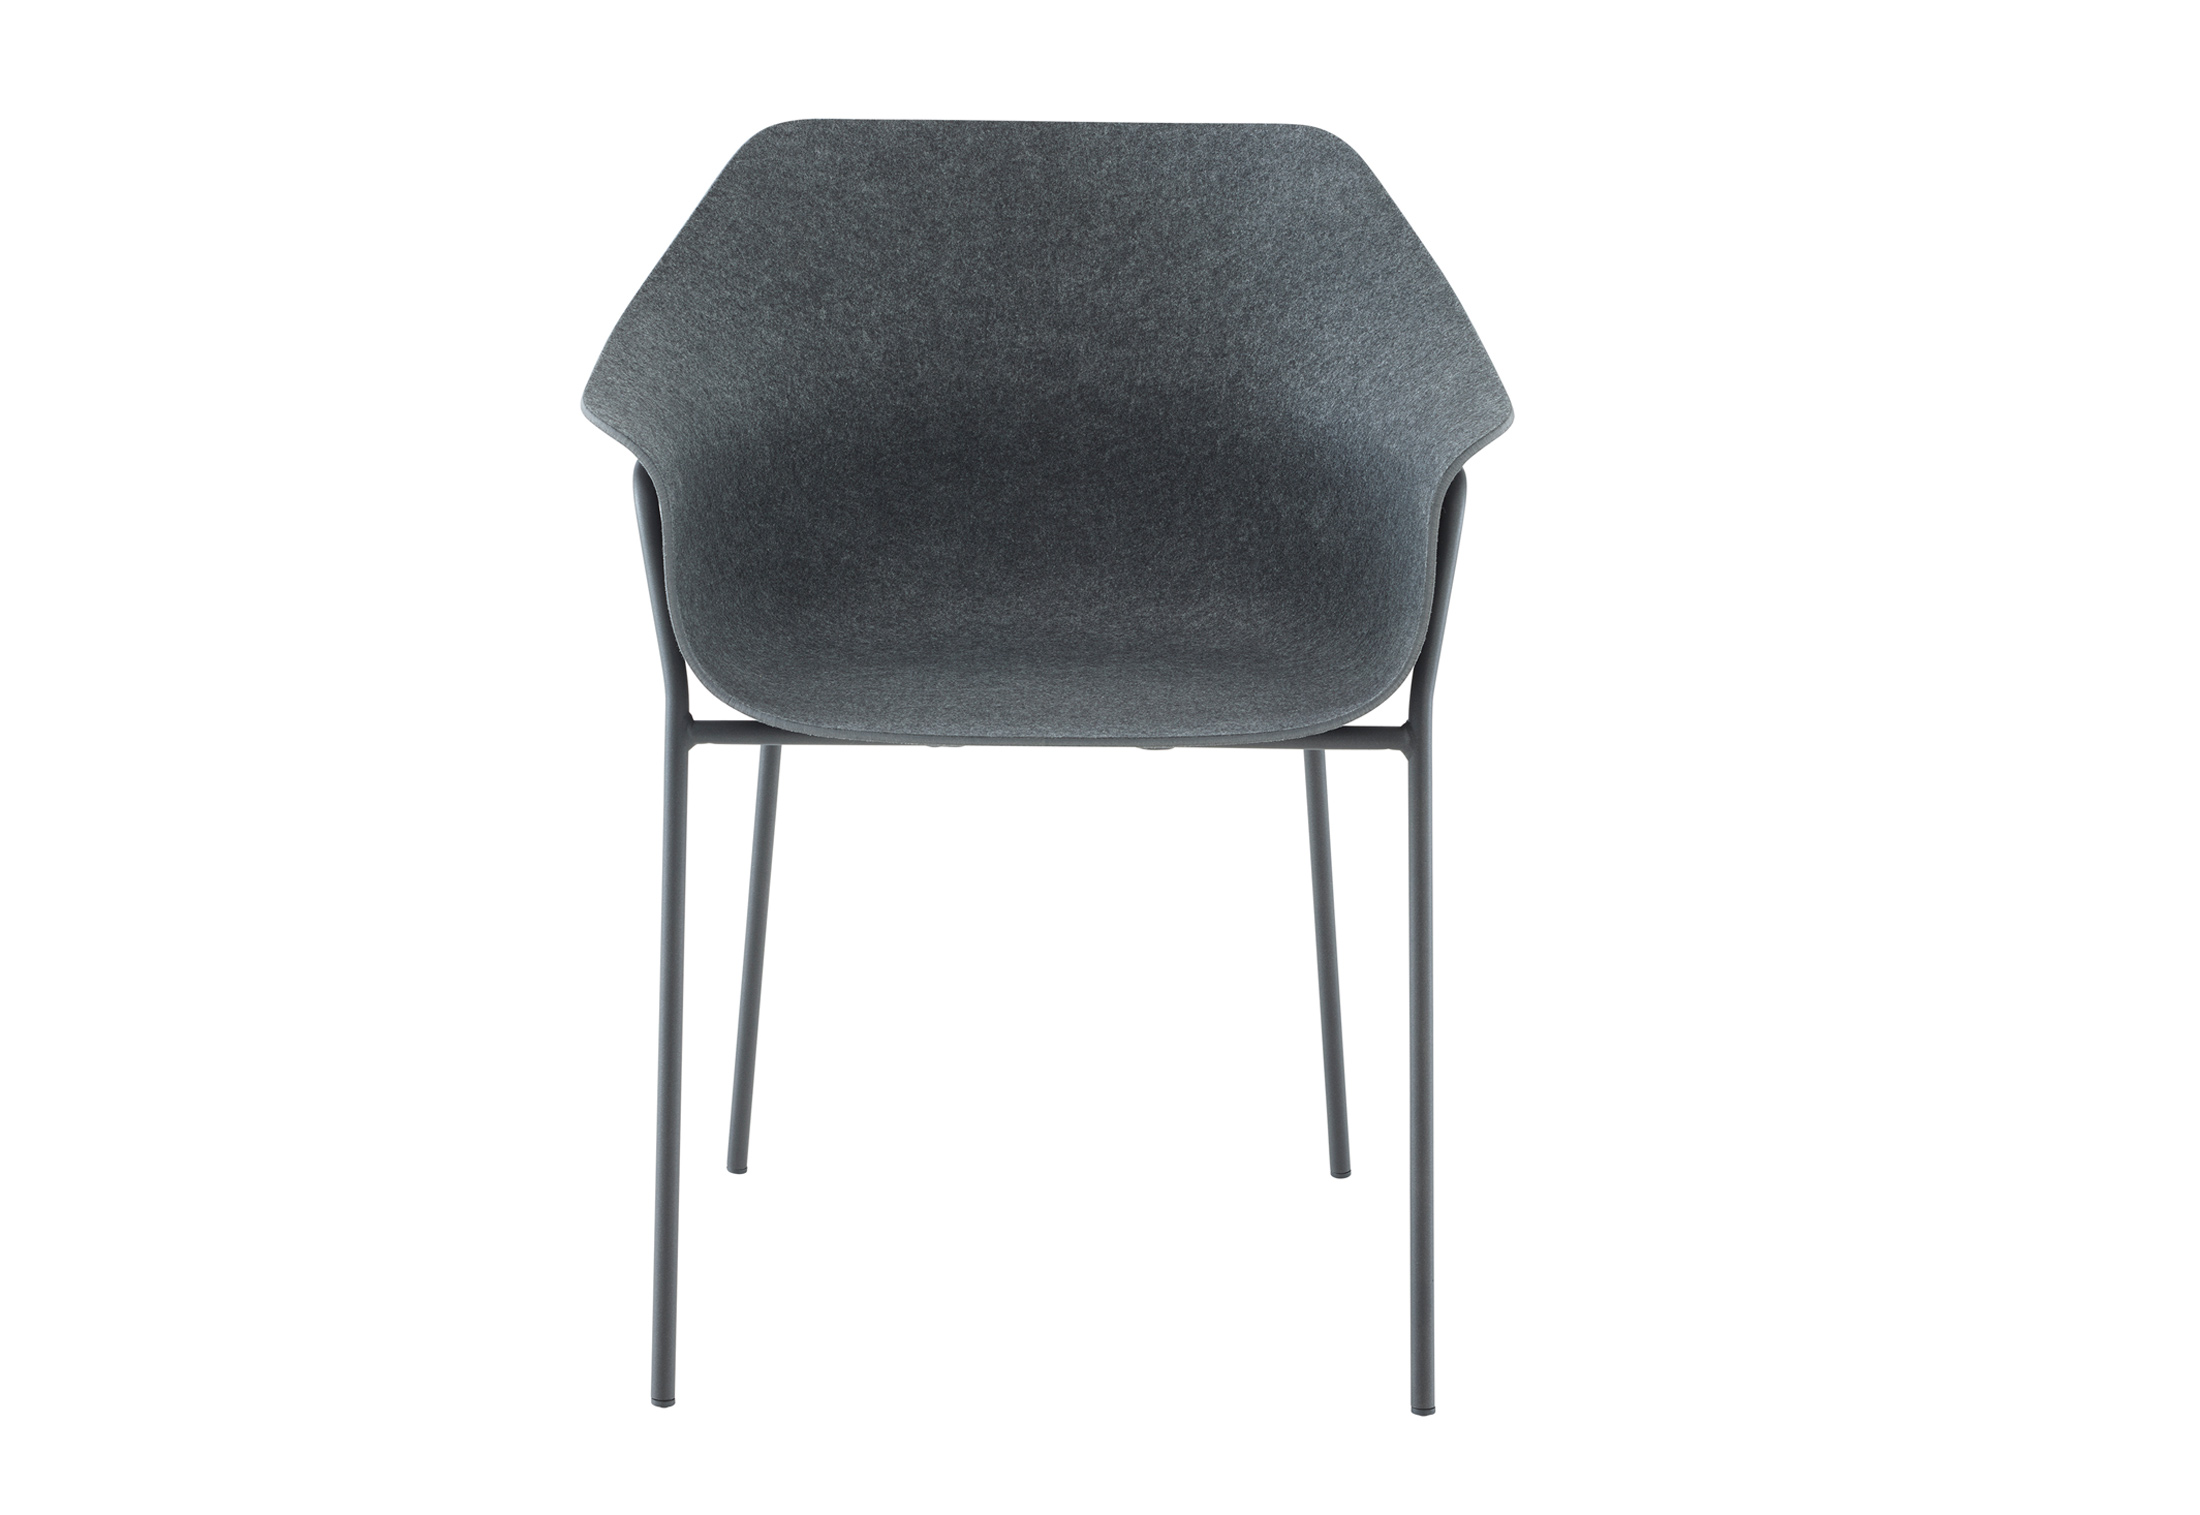 ettoriano chair with armrests by ligne roset stylepark. Black Bedroom Furniture Sets. Home Design Ideas